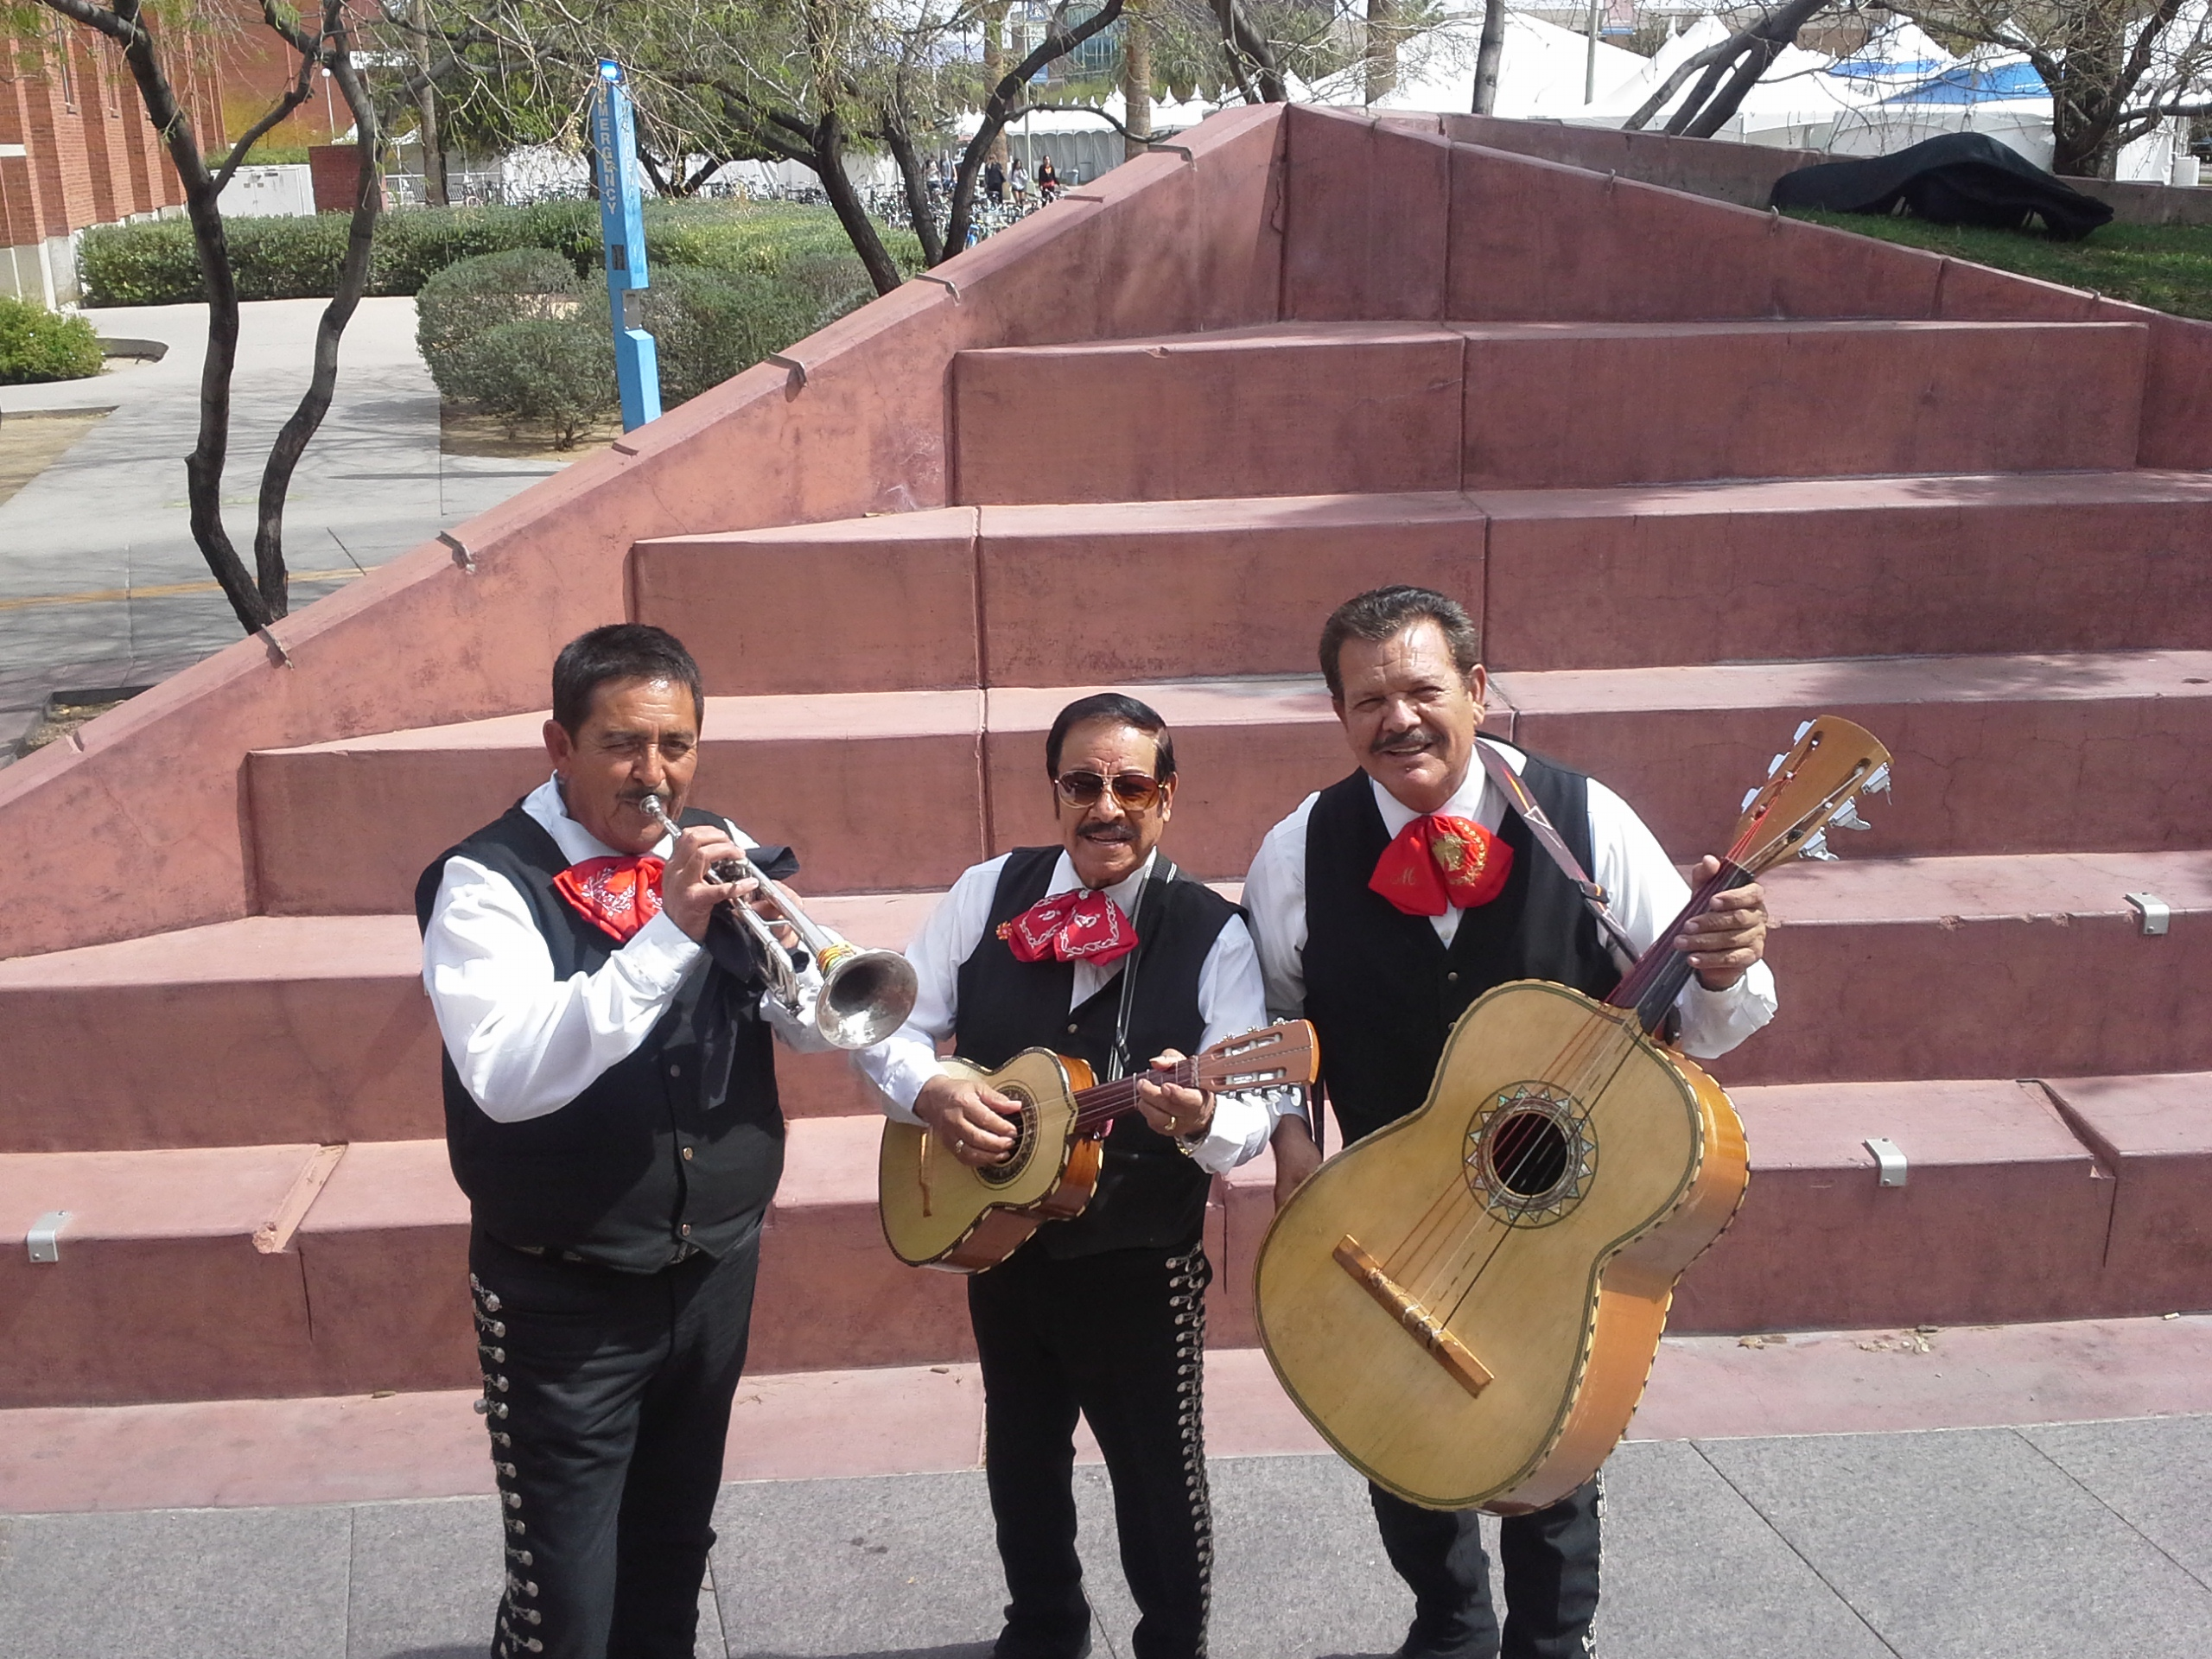 Mariachi Band For Hire Any Event This October